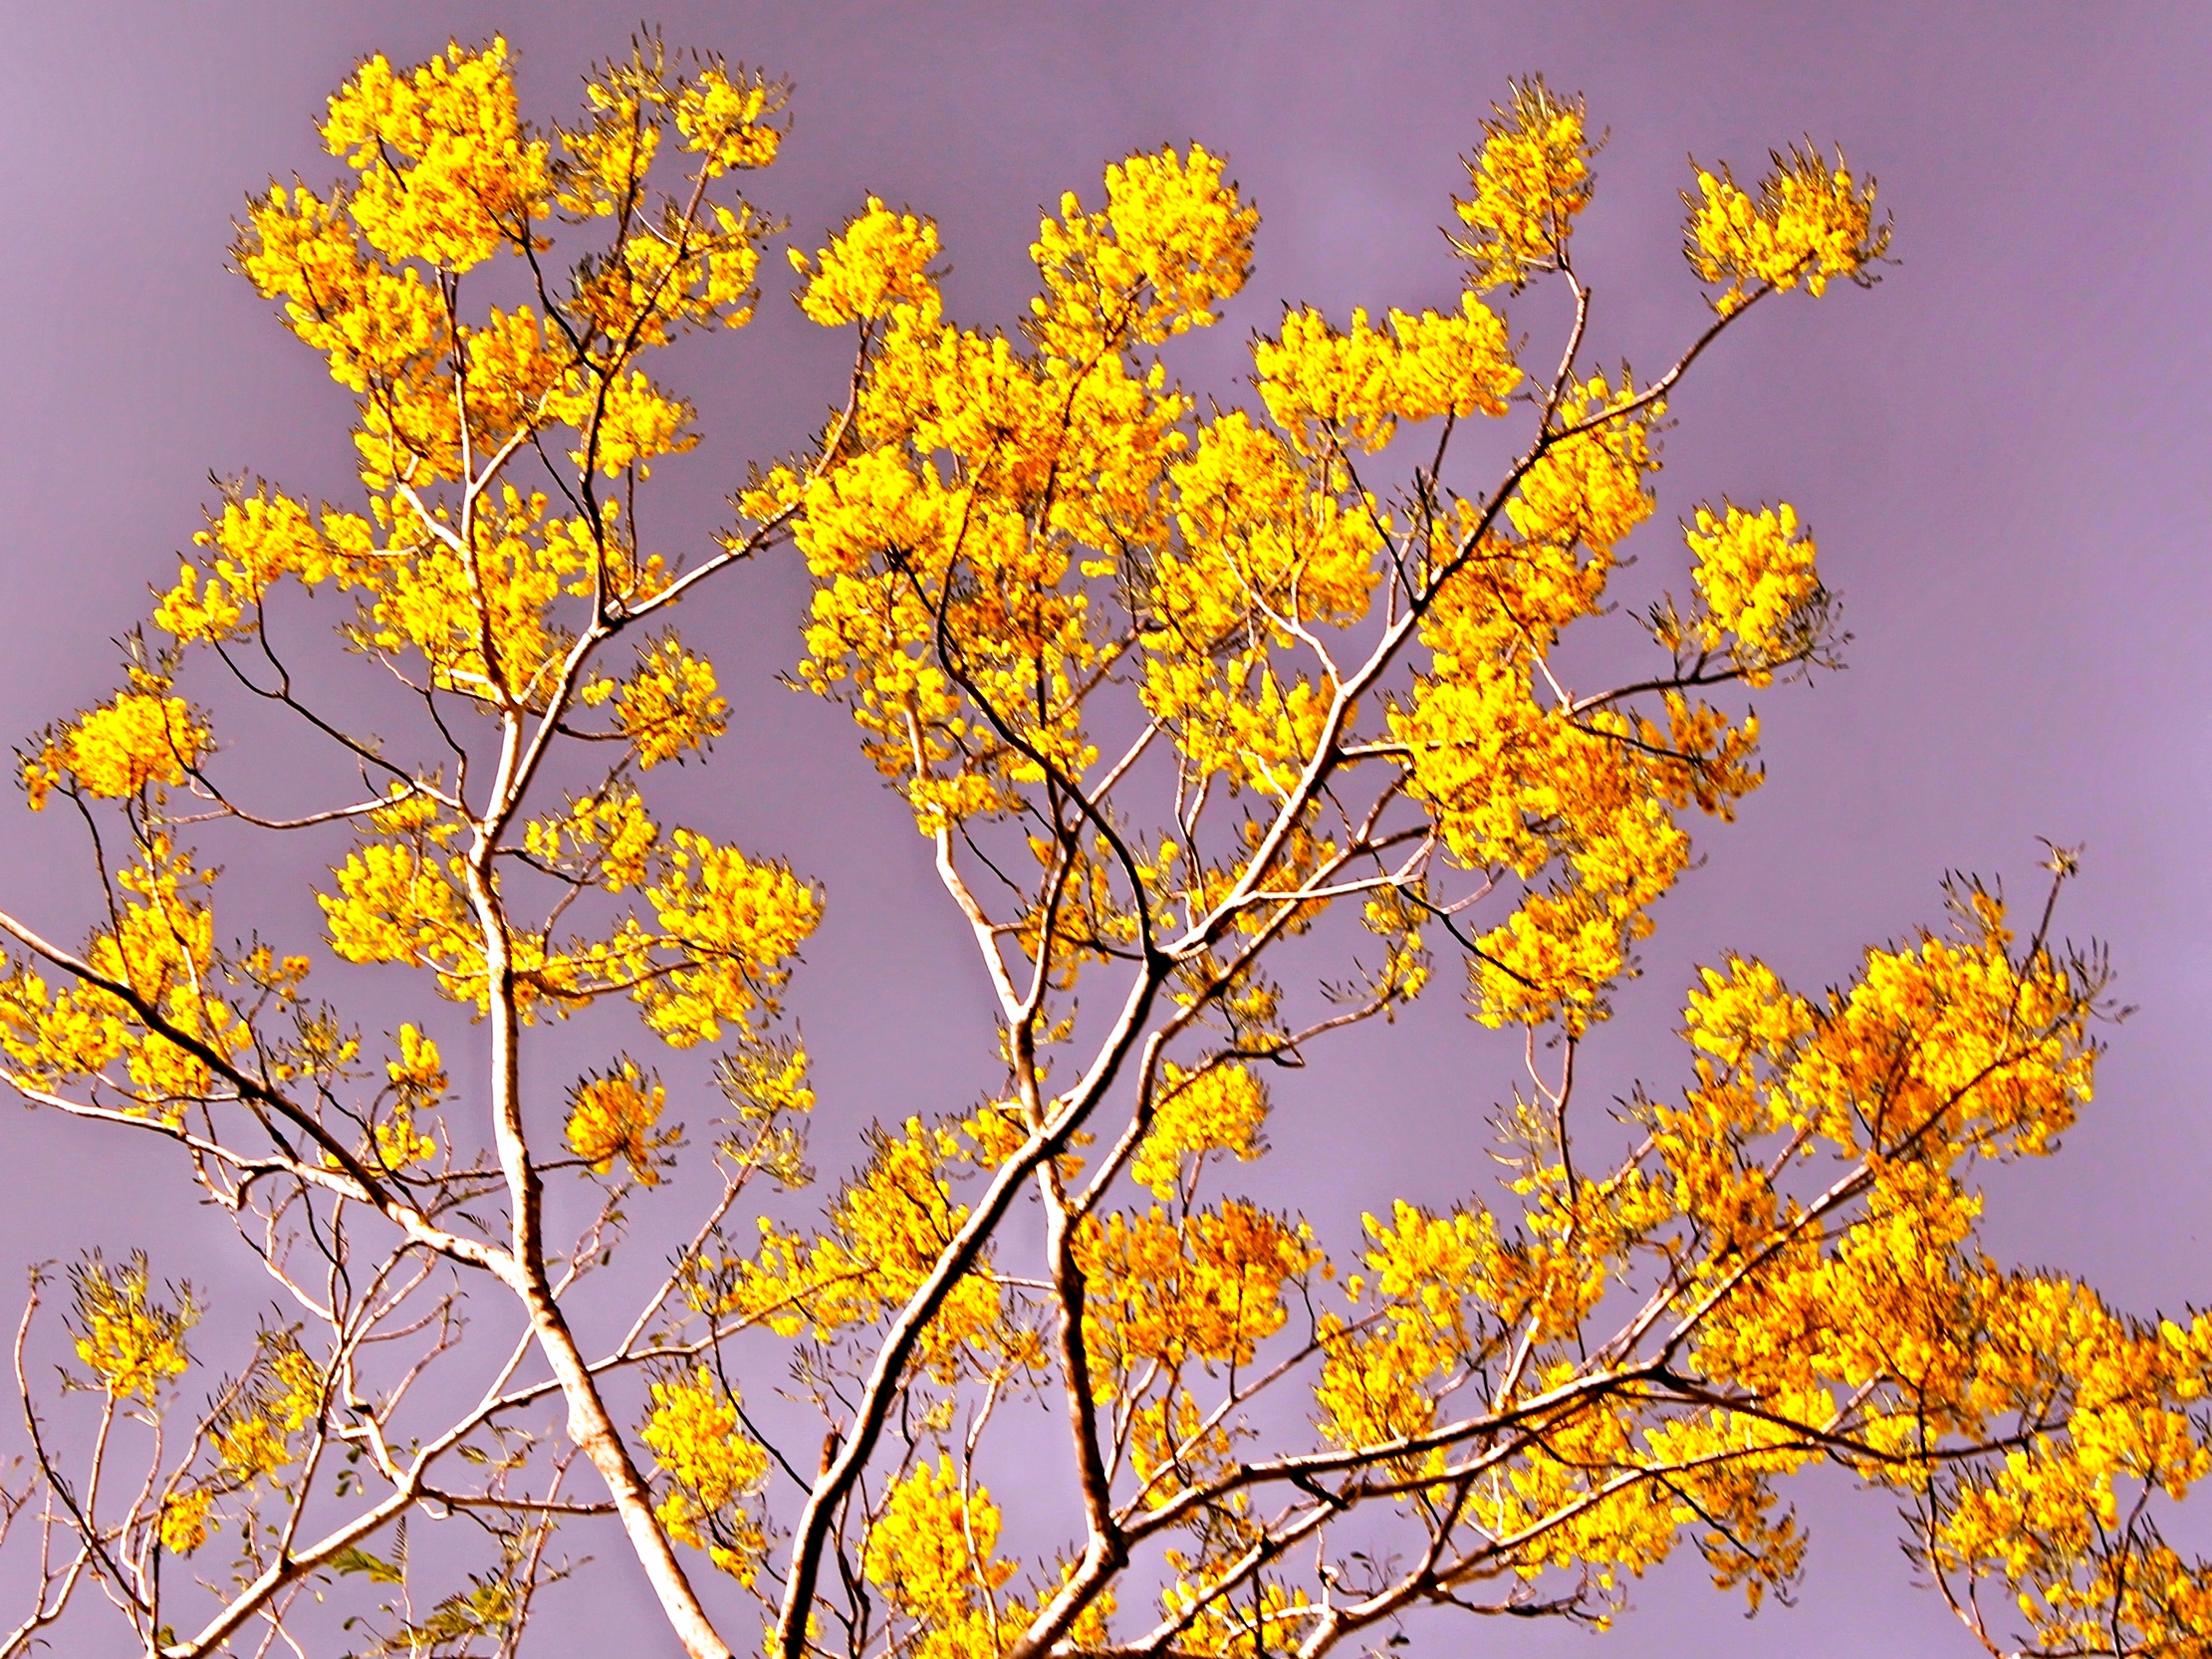 Quam Tree in full bloom - Belize Vacations - SabreWing Travel